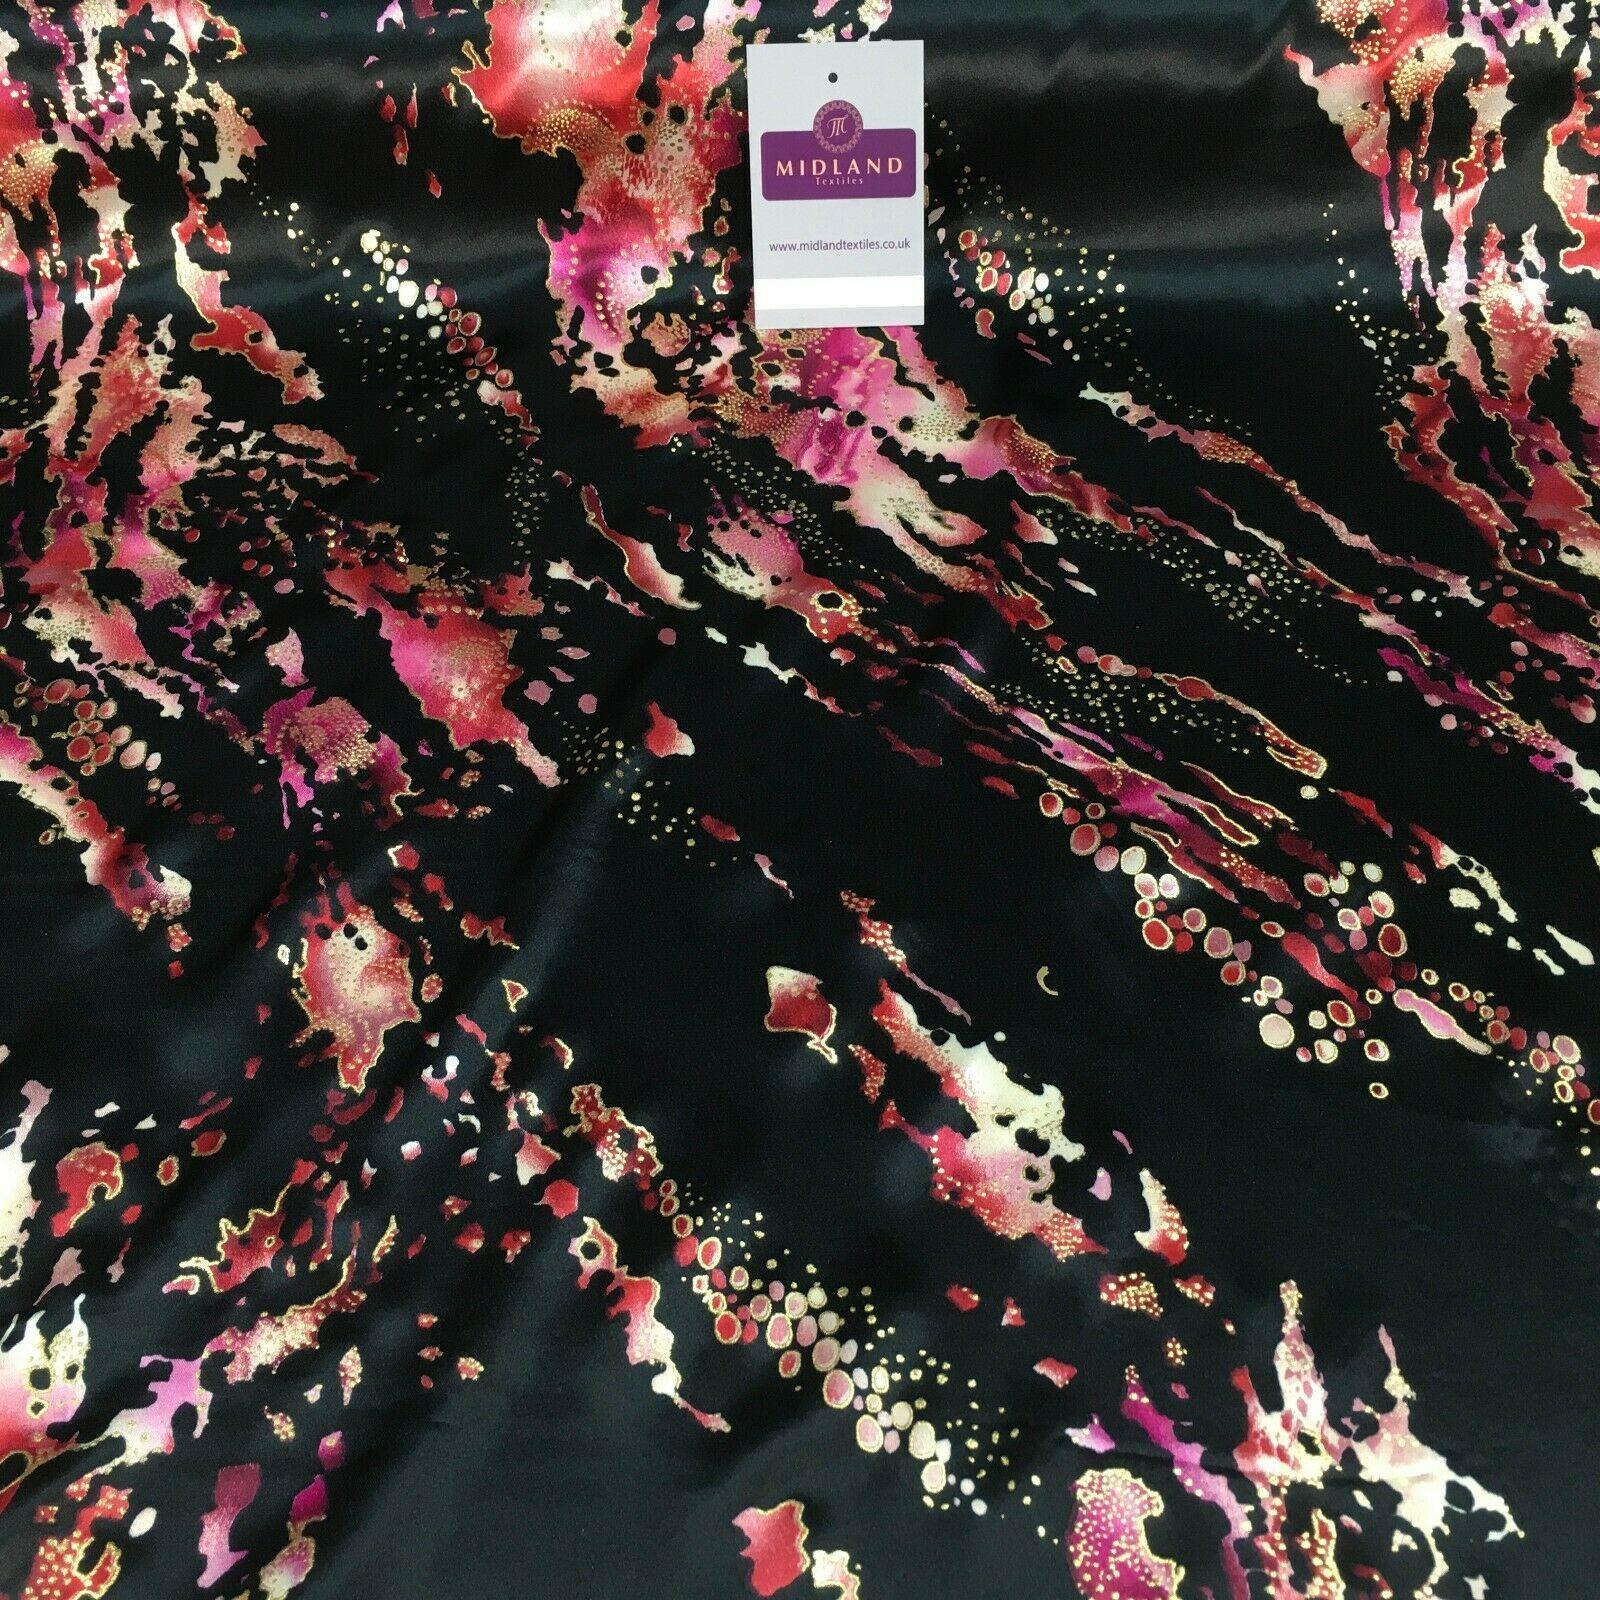 Abstract Gold foil Printed Satin Chiffon Dress Fabric 111cm MA1187 Mtex